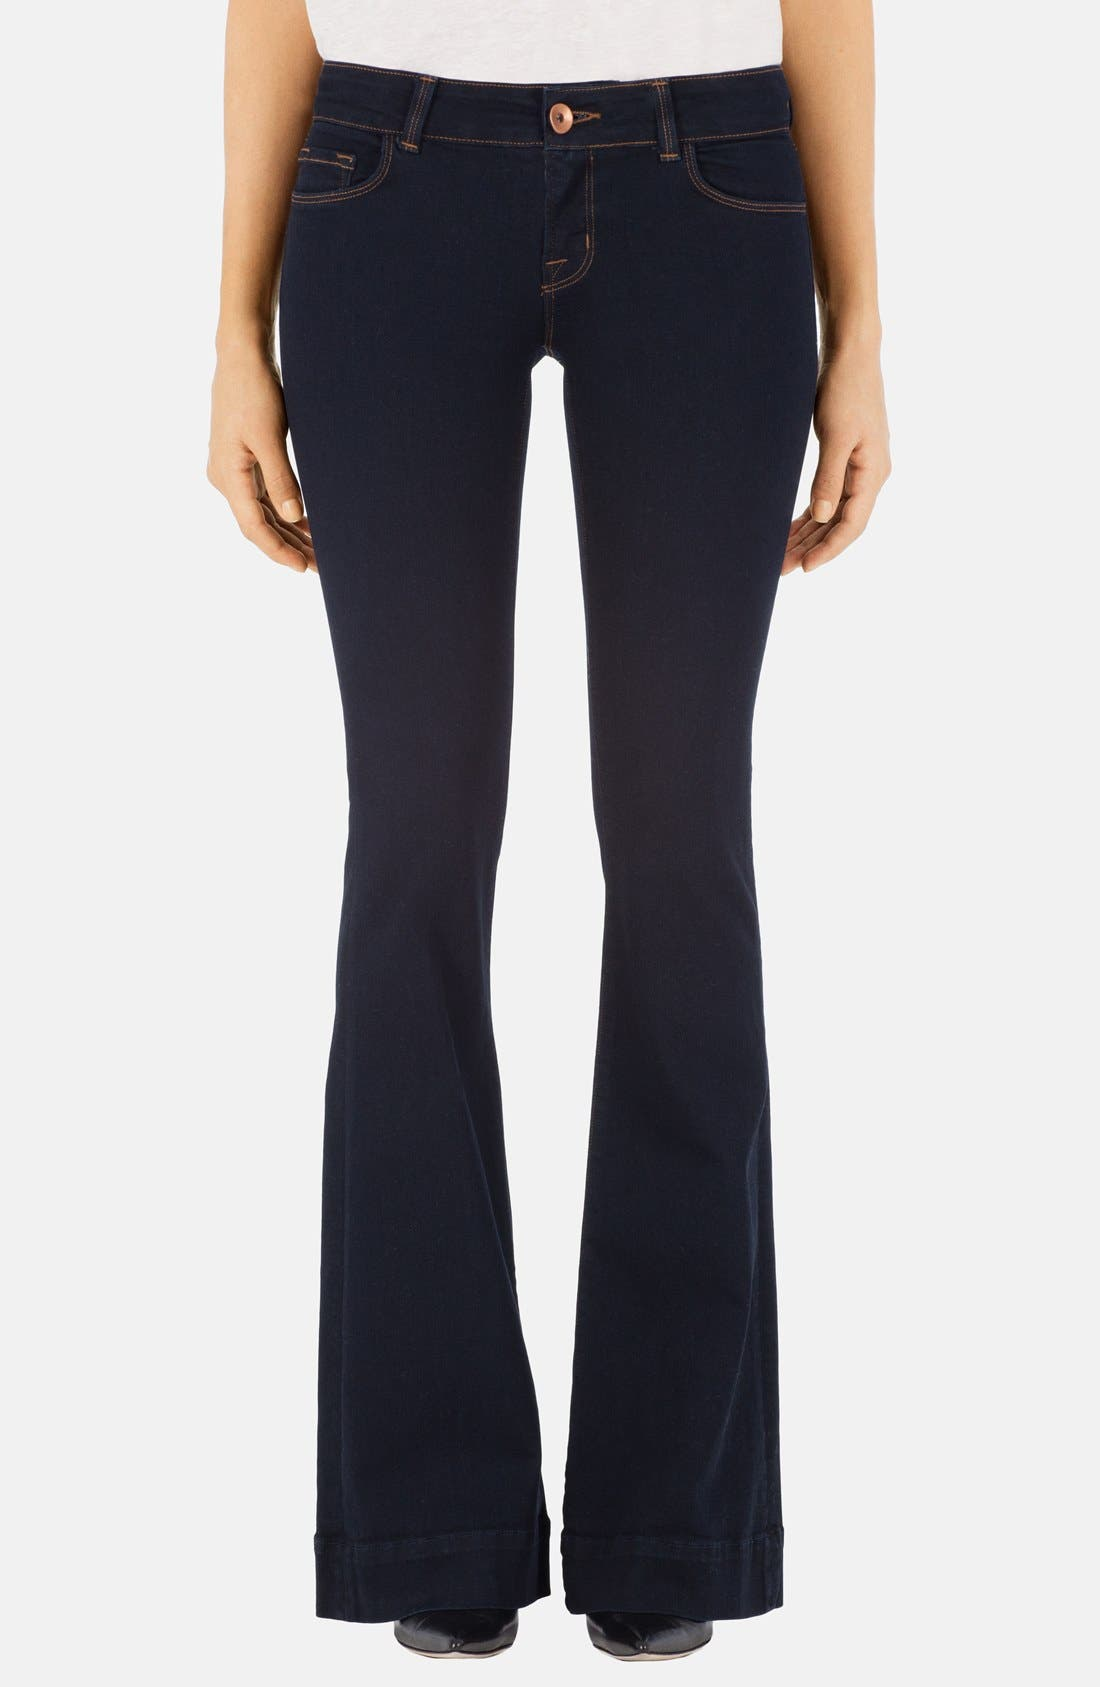 J BRAND, 'Love Story' Flare Jeans, Main thumbnail 1, color, 409